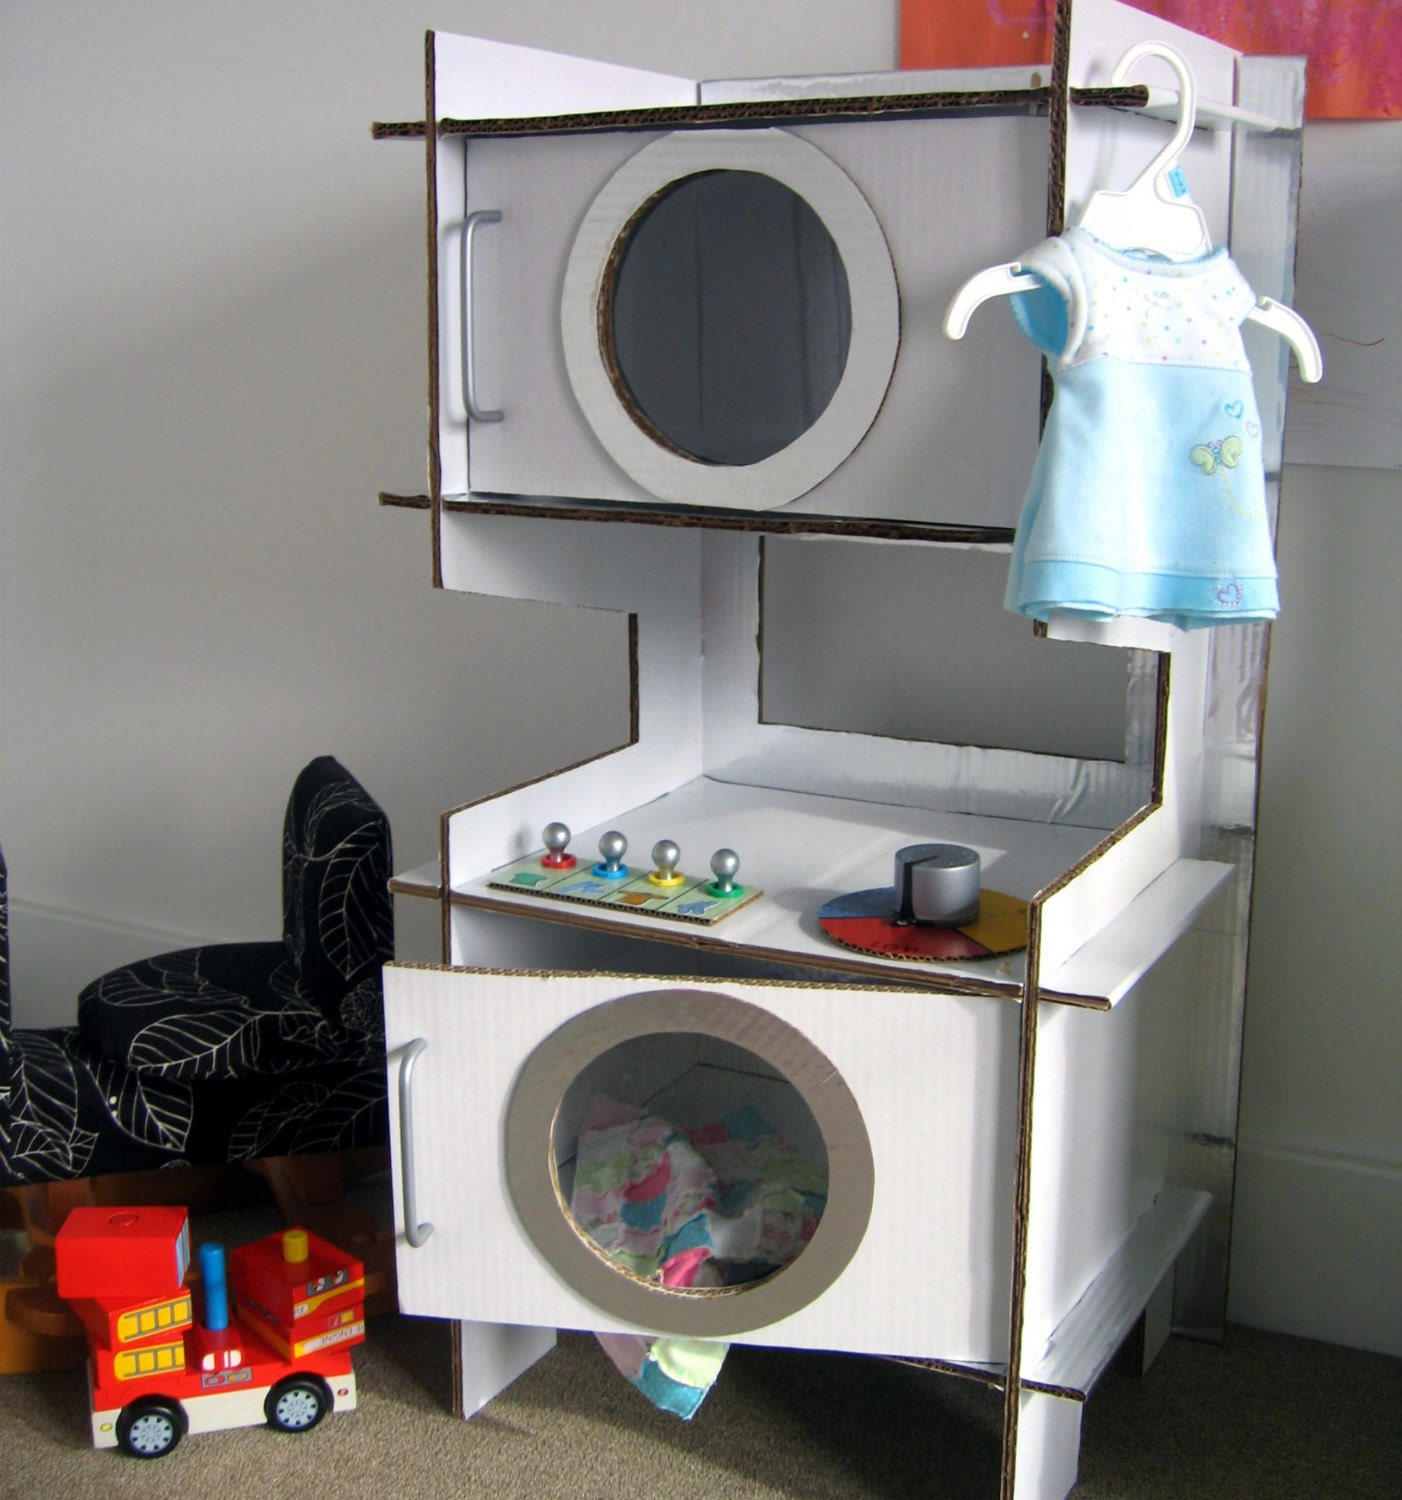 Build a Cardboard Play Washer and Dryer